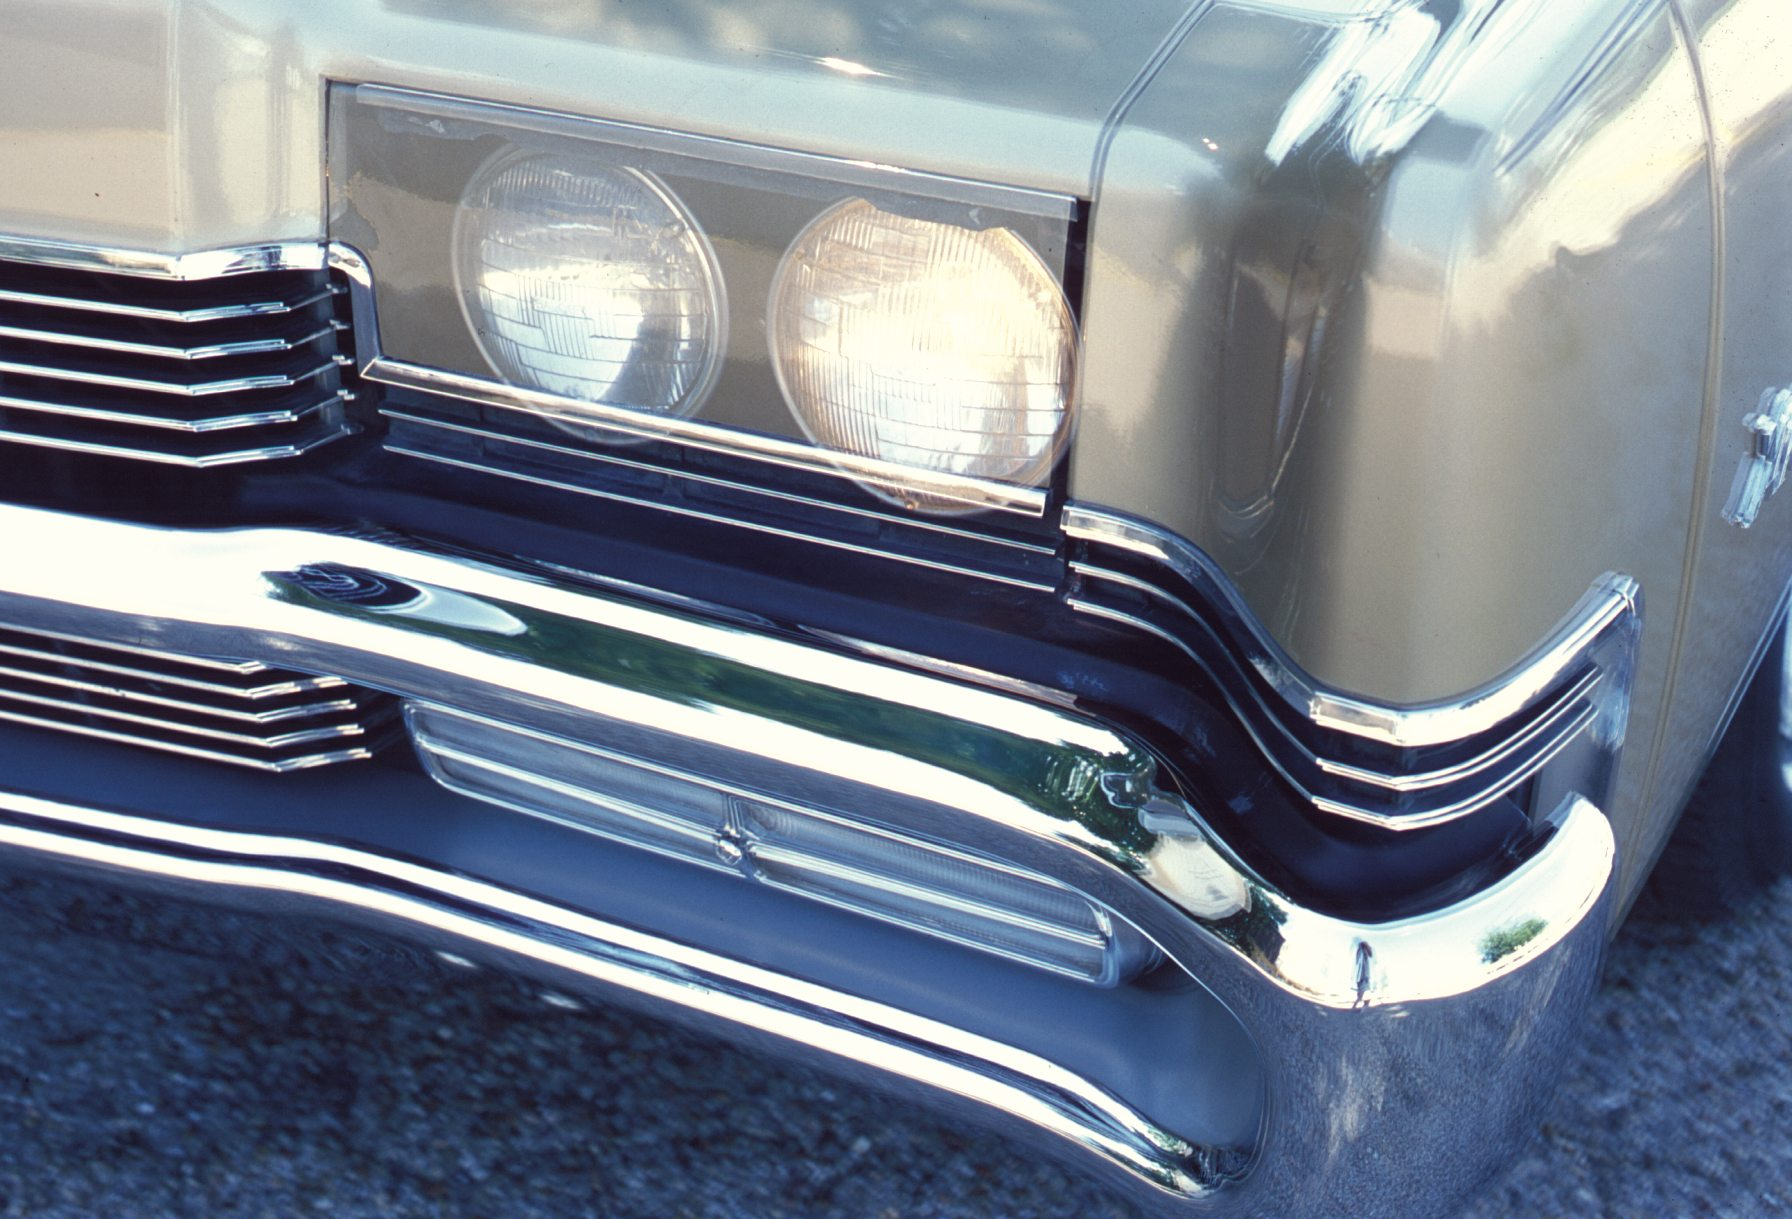 1969 Mercury Marauder Headlight Close Up